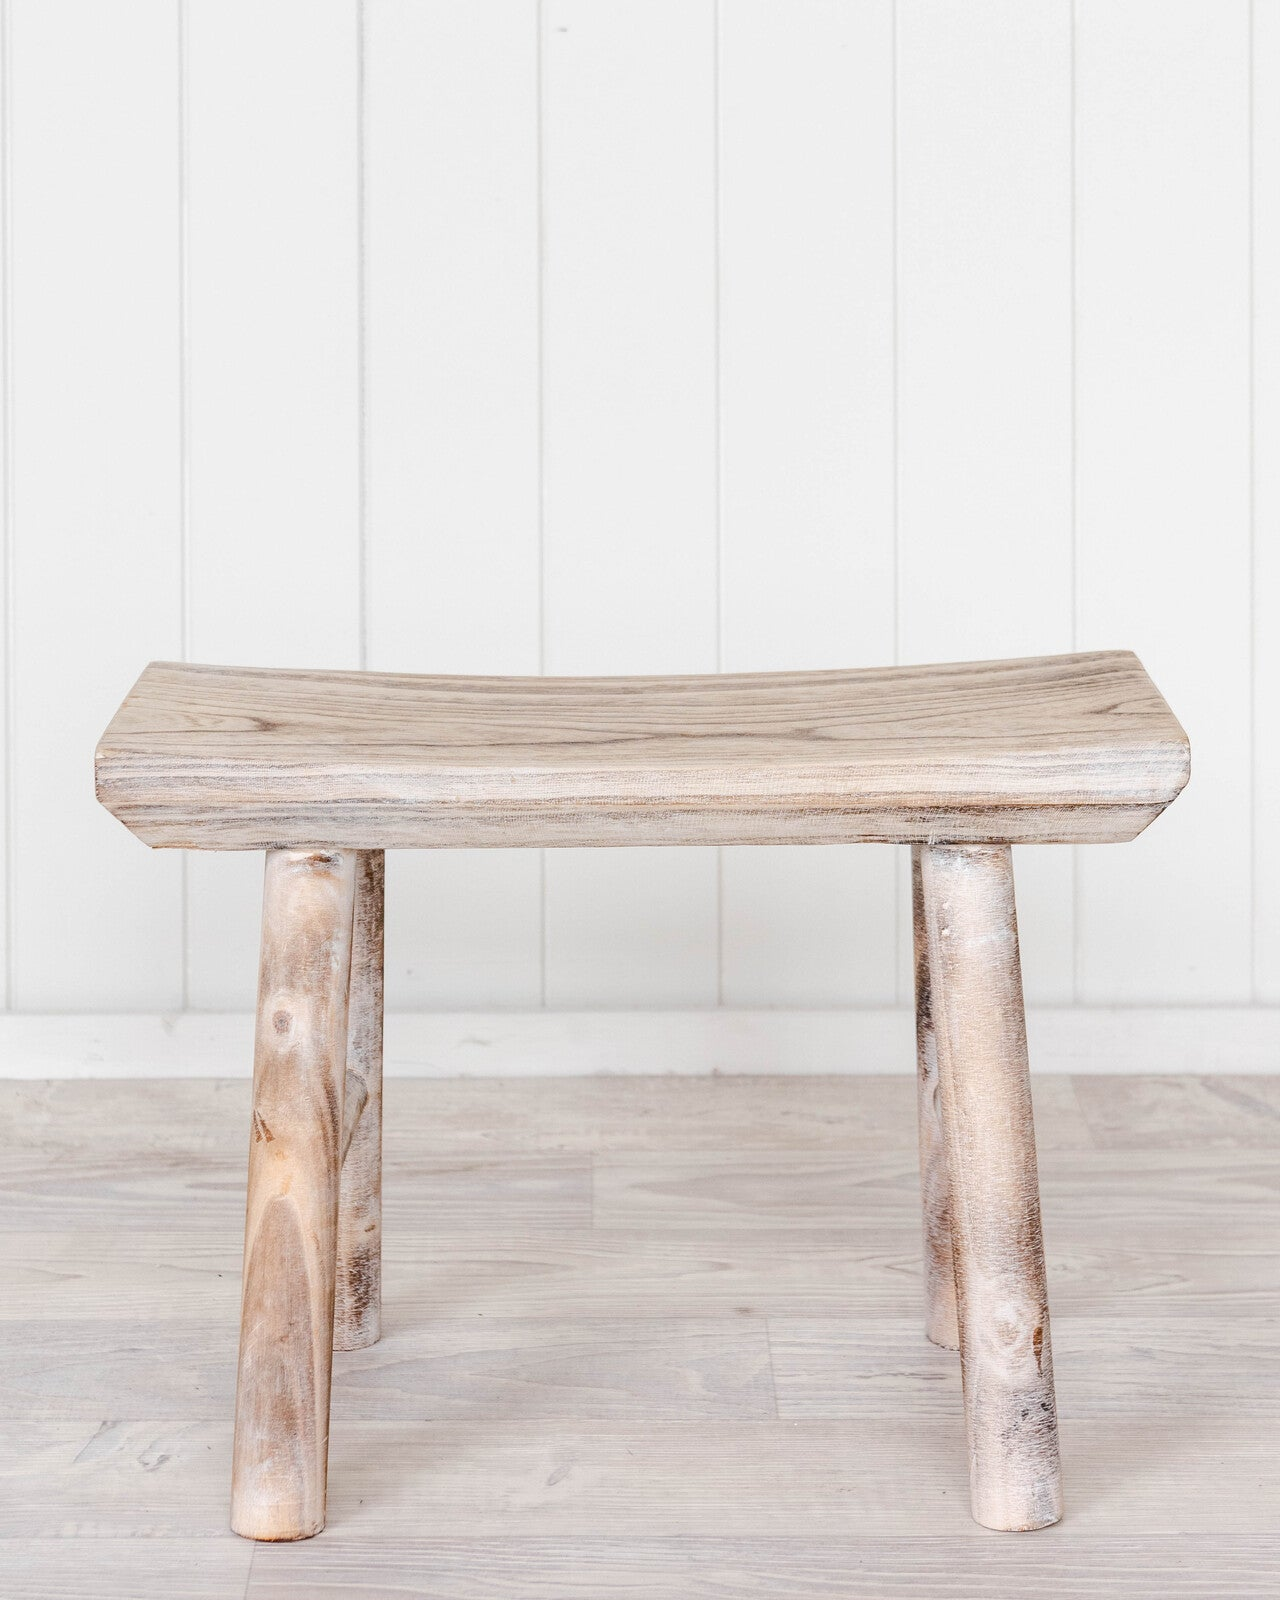 Stool - Timber W/Wash Moki - 45x19x31